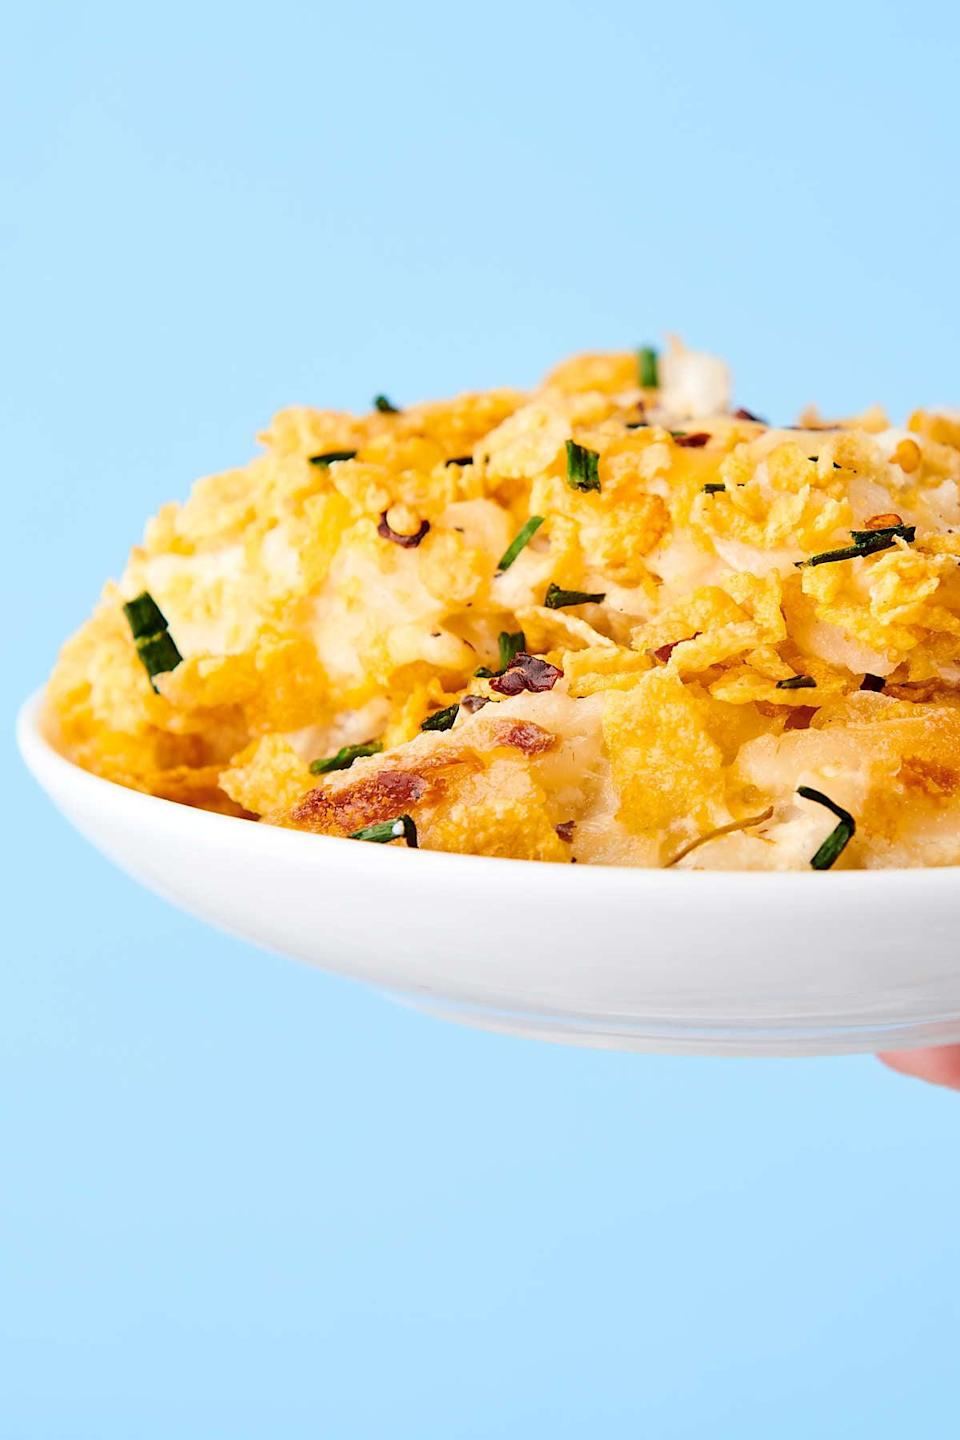 "<p>Forget the turkey! If you have a hash brown casserole that's as creamy, cheesy, and crunchy as this recipe, you'll forgo the main dish all together. We suggest adding extra Corn Flakes to really give it a kick. Since this recipe serves 12 people, we suggest dividing the ingredients by four so you can feed two people, plus have a little extra since it's just <em>that</em> good.</p> <p><strong>Get the recipe</strong>: <a href=""https://showmetheyummy.com/hashbrown-casserole/"" class=""link rapid-noclick-resp"" rel=""nofollow noopener"" target=""_blank"" data-ylk=""slk:hash brown casserole"">hash brown casserole</a></p>"